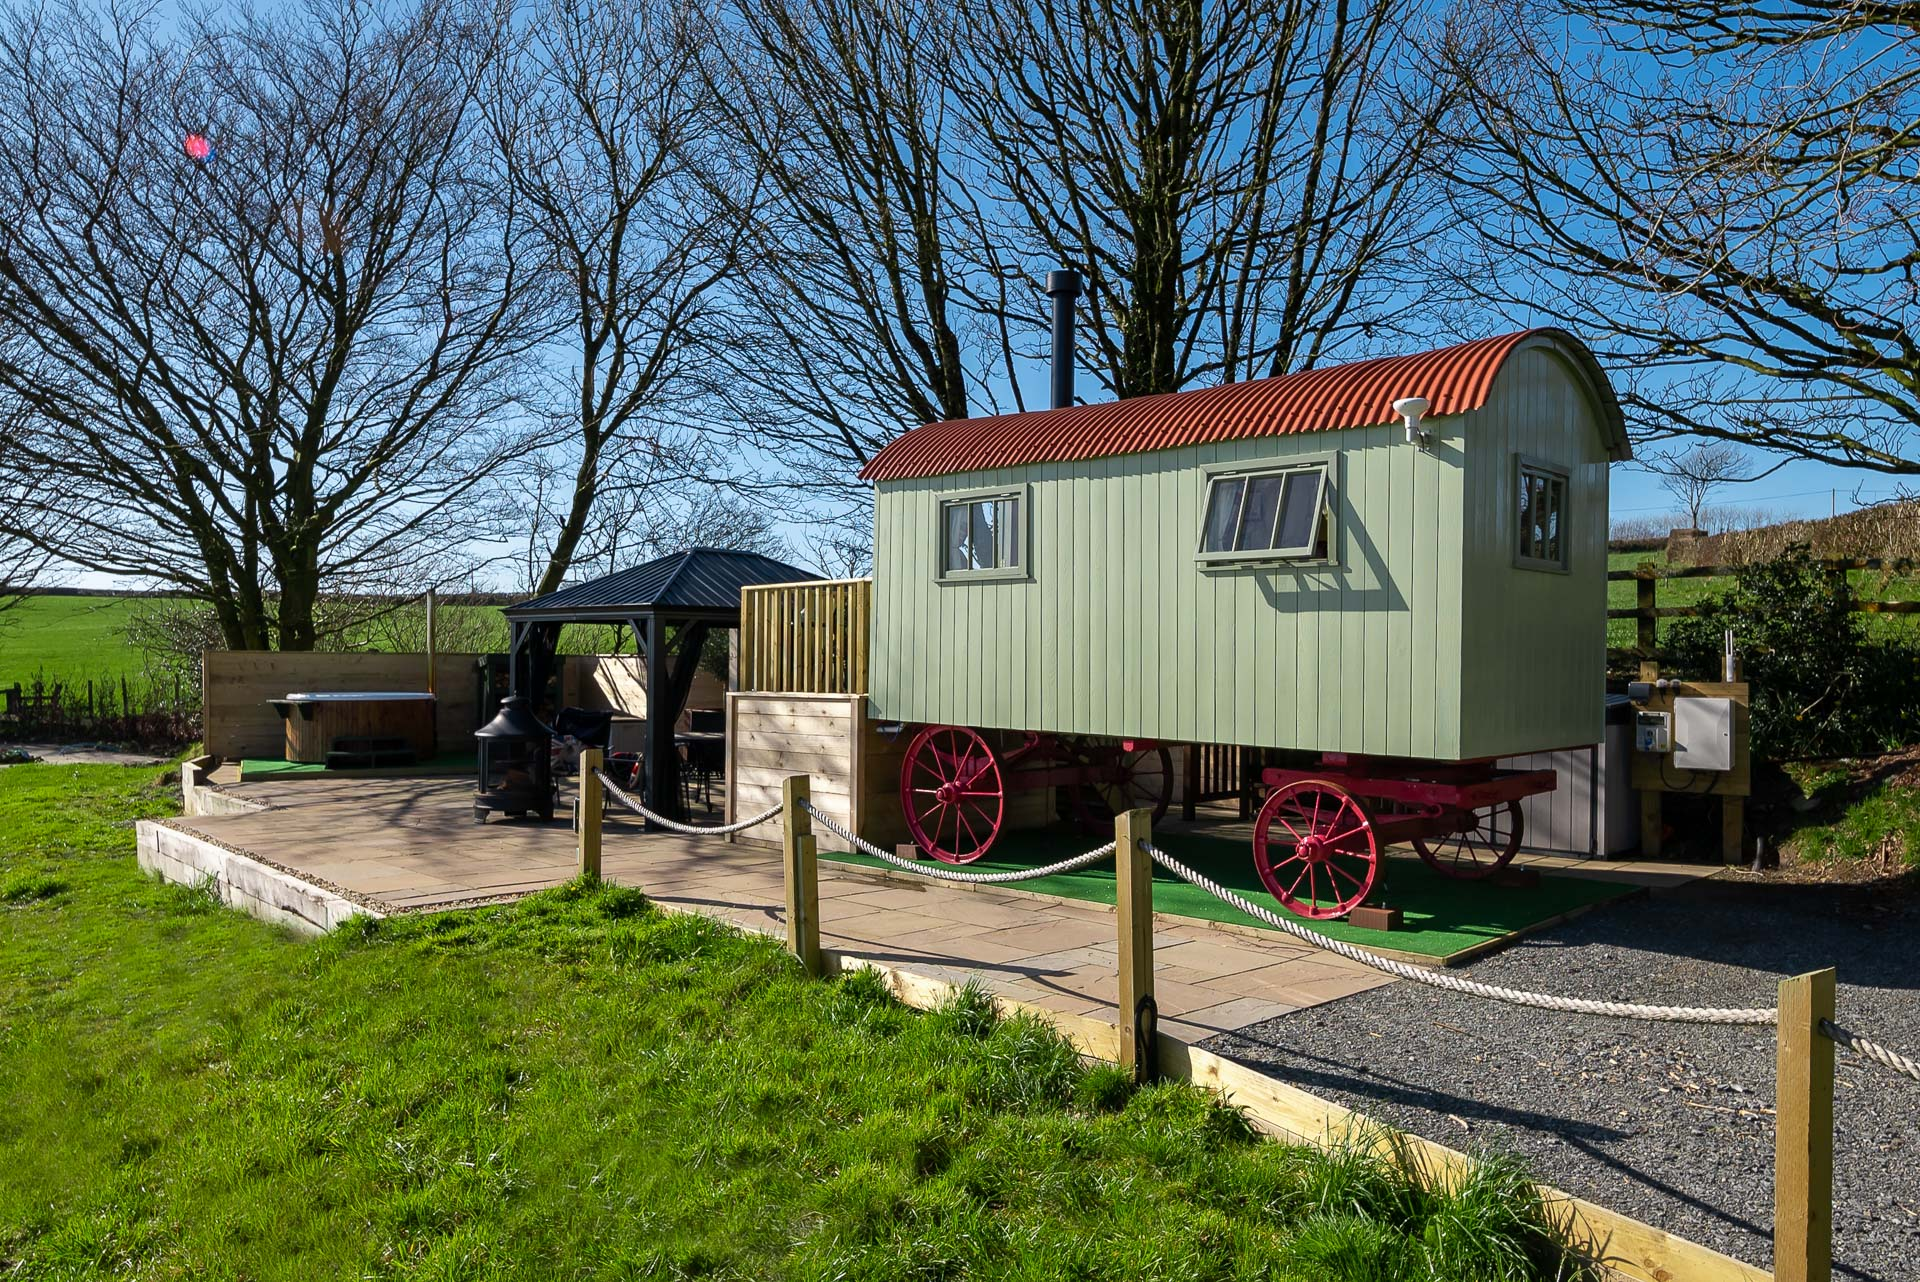 The Shepherd's Hut at Accott Manor